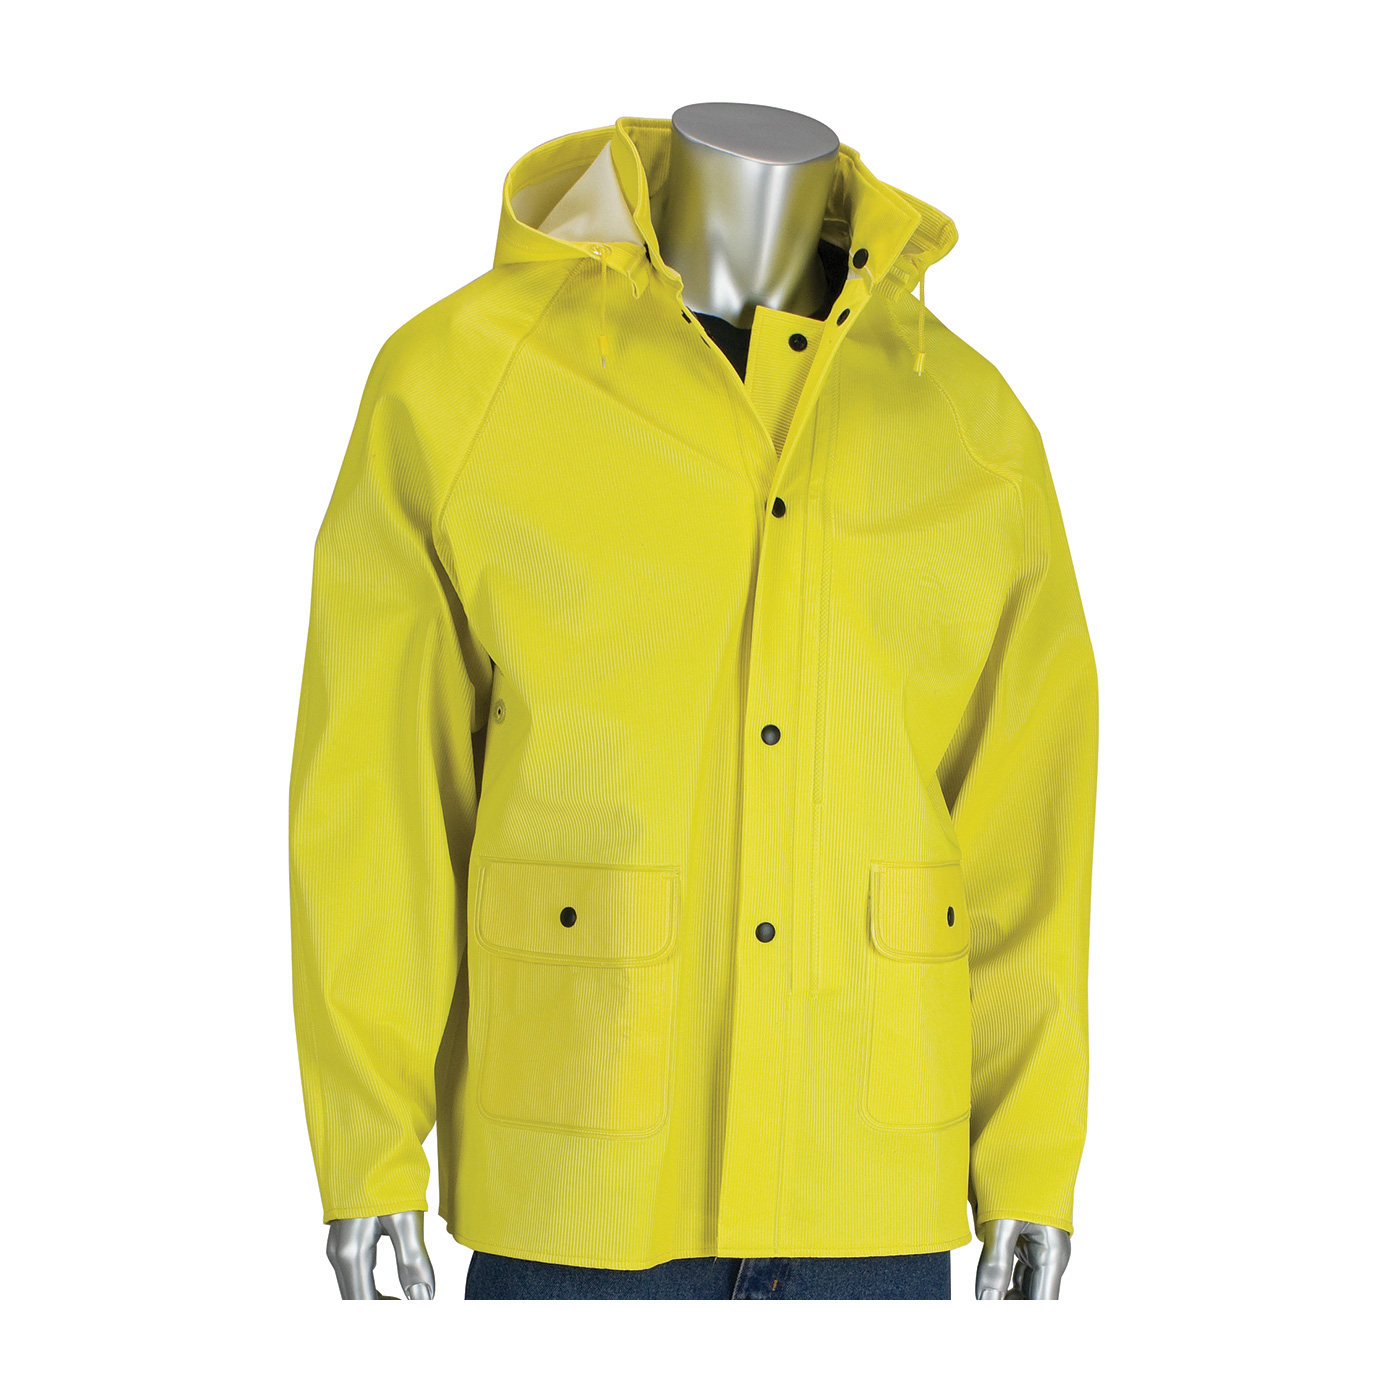 PIP Flex™ Yellow 0.65mm Ribbed PVC/Polyester Hooded Rain Jacket